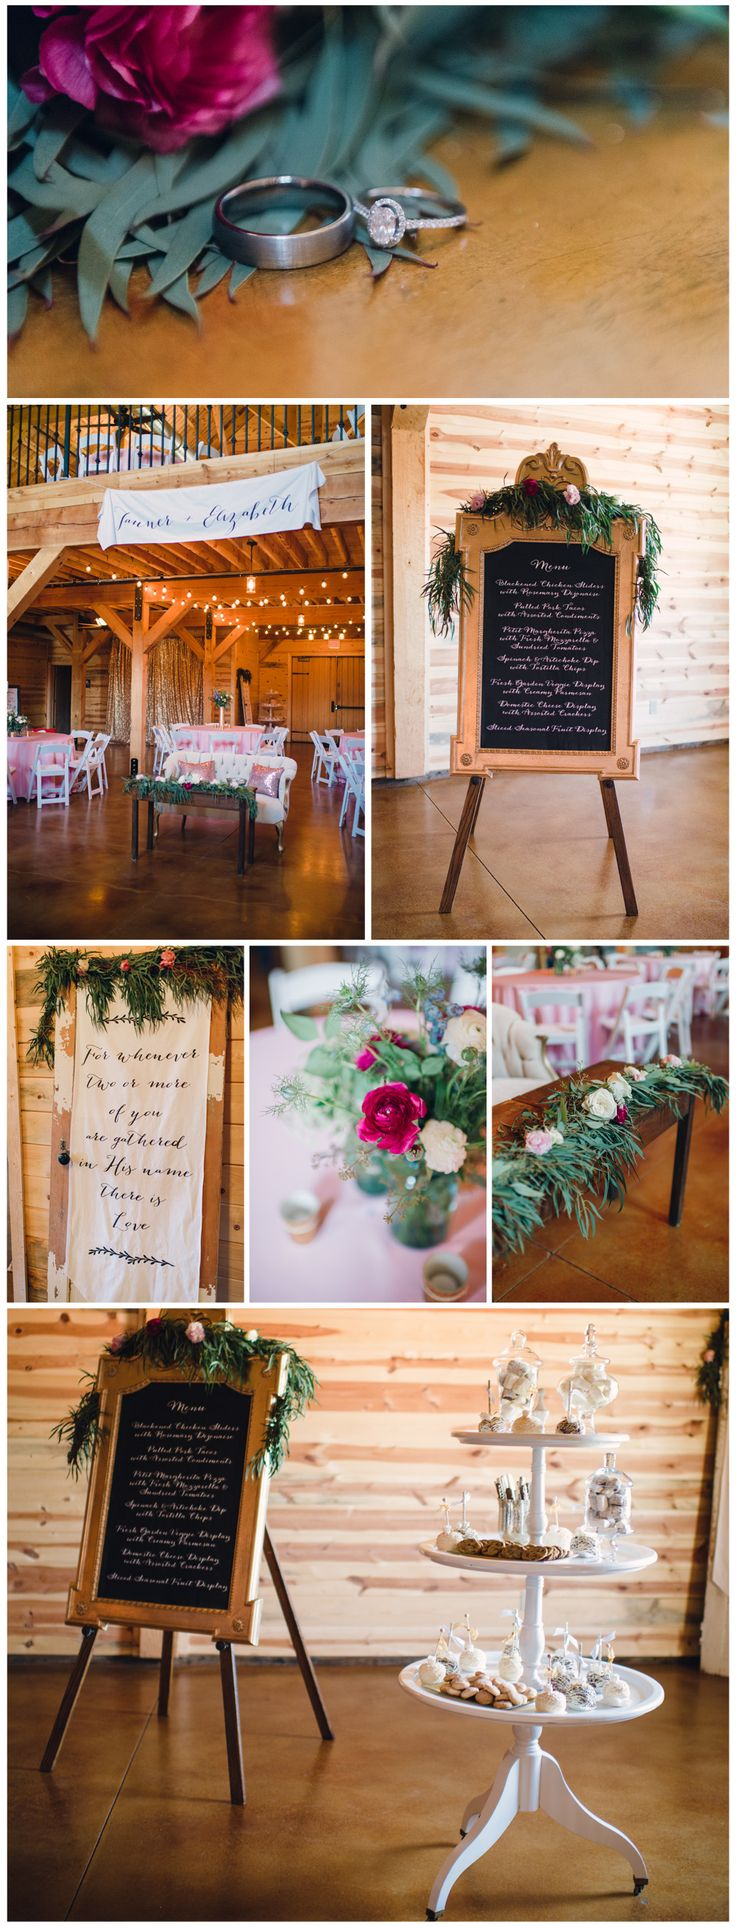 Great Details With Lots Of Florals Decorating The Inside McGranahan Barn In Oklahoma Wedding VenueBarn